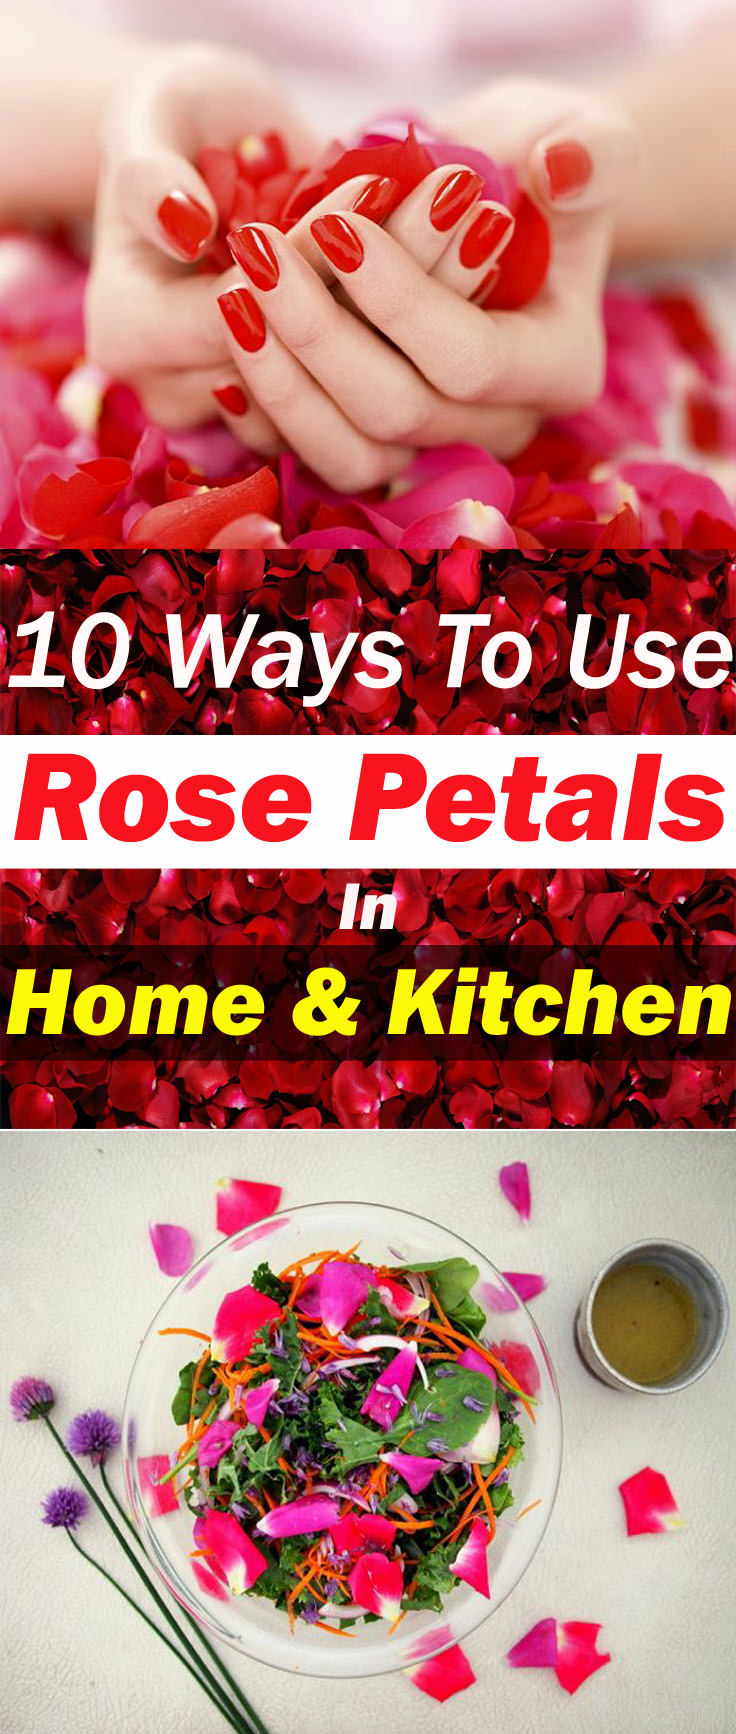 Fragrant, colorful, and beautiful we don't need to describe what roses are. This flower is edible and has many culinary and medicinal uses. Learn about the 10 ways to use rose petals in this article!